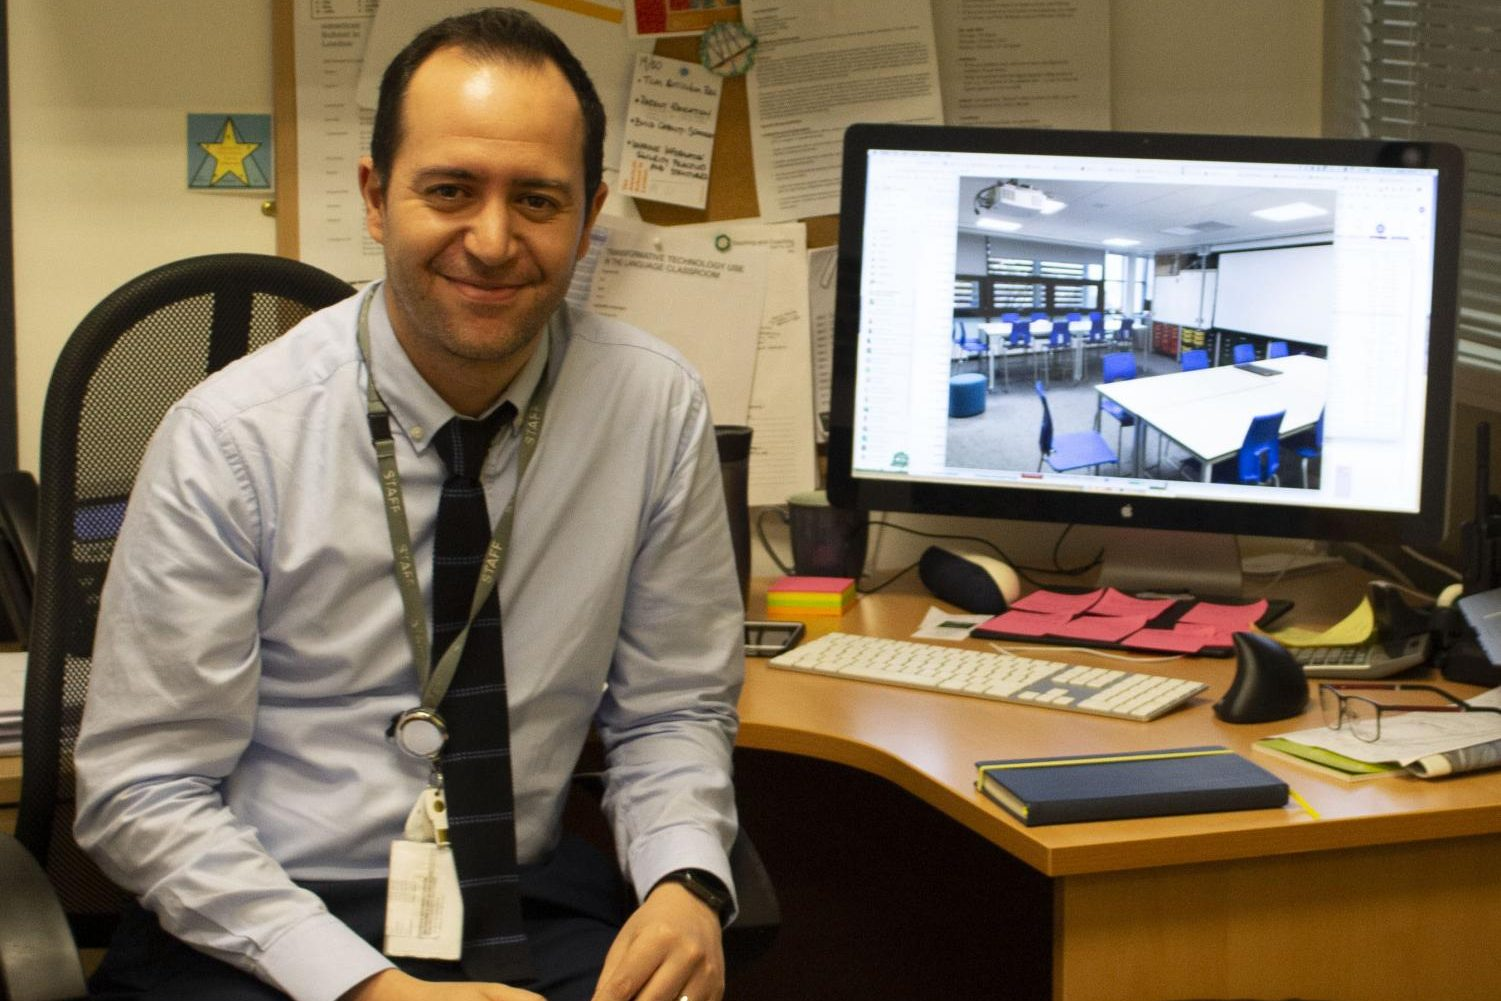 Director of Technology Nadjib Aktouf had a role in overseeing the development of technology at the school. Most recently, the change from PowerSchool Learning to Schoology was a major transition for the school that he helped organize.